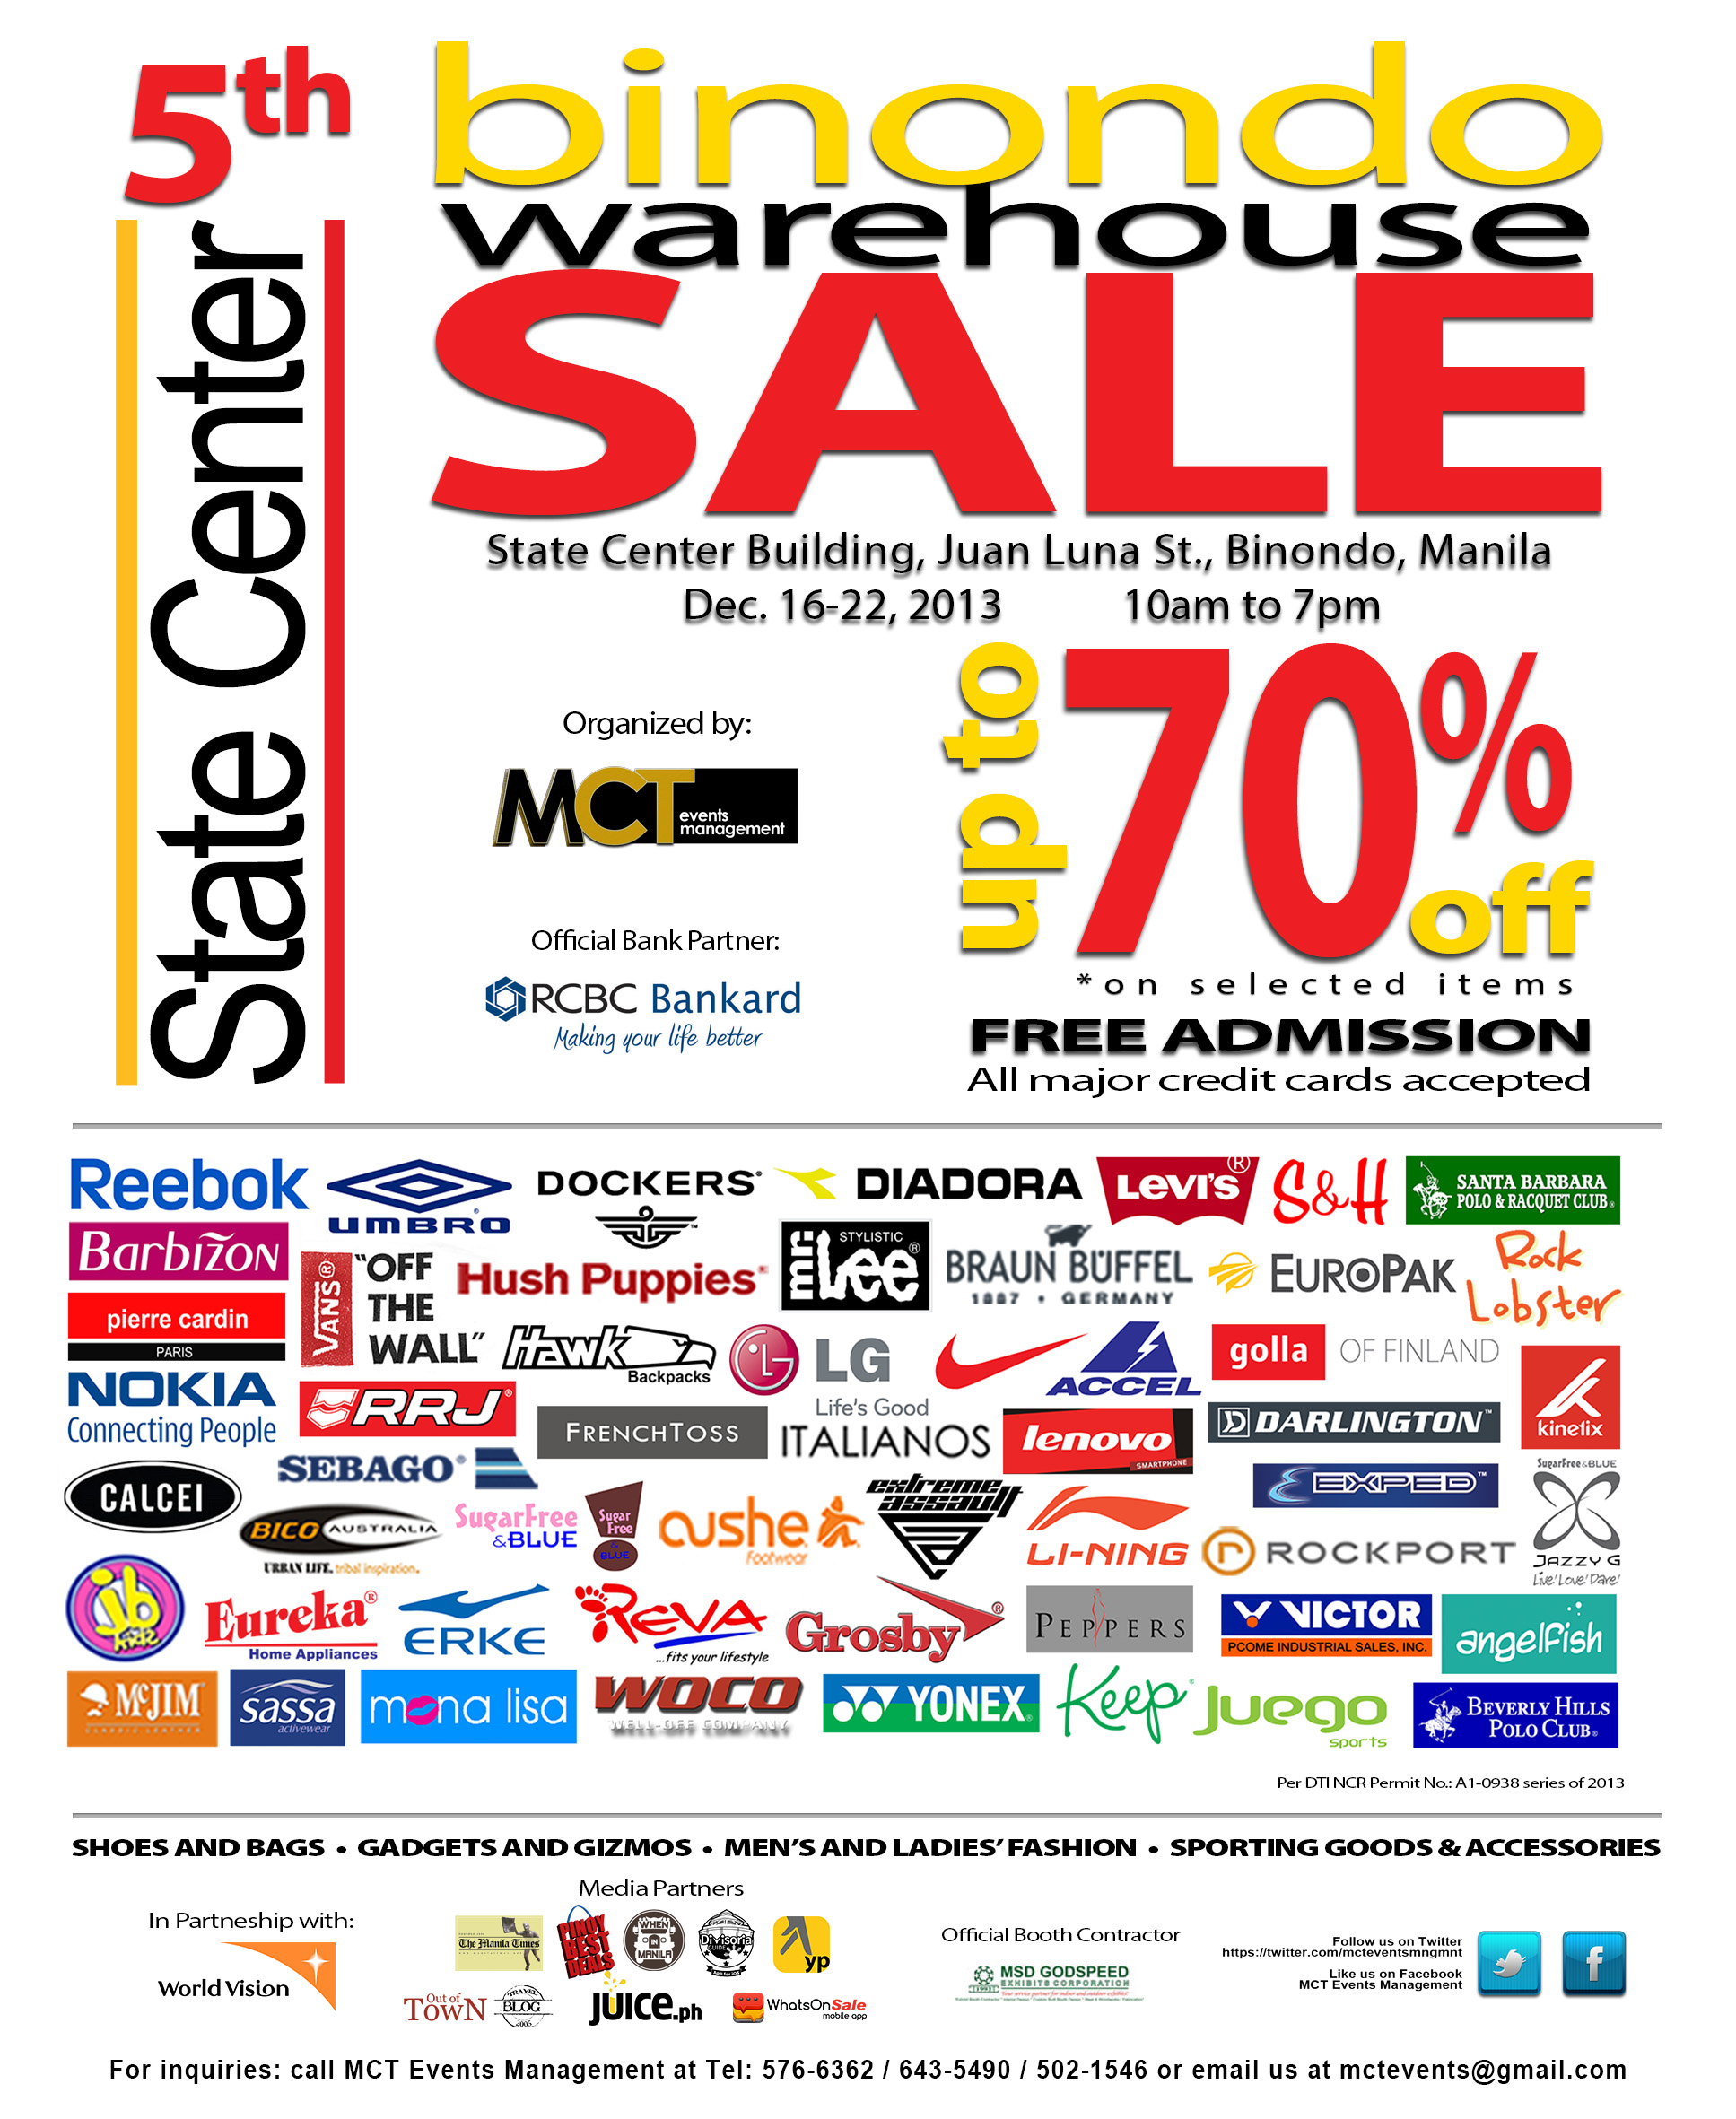 5th Binondo Warehouse Sale @ State Center Investment Building December 2013